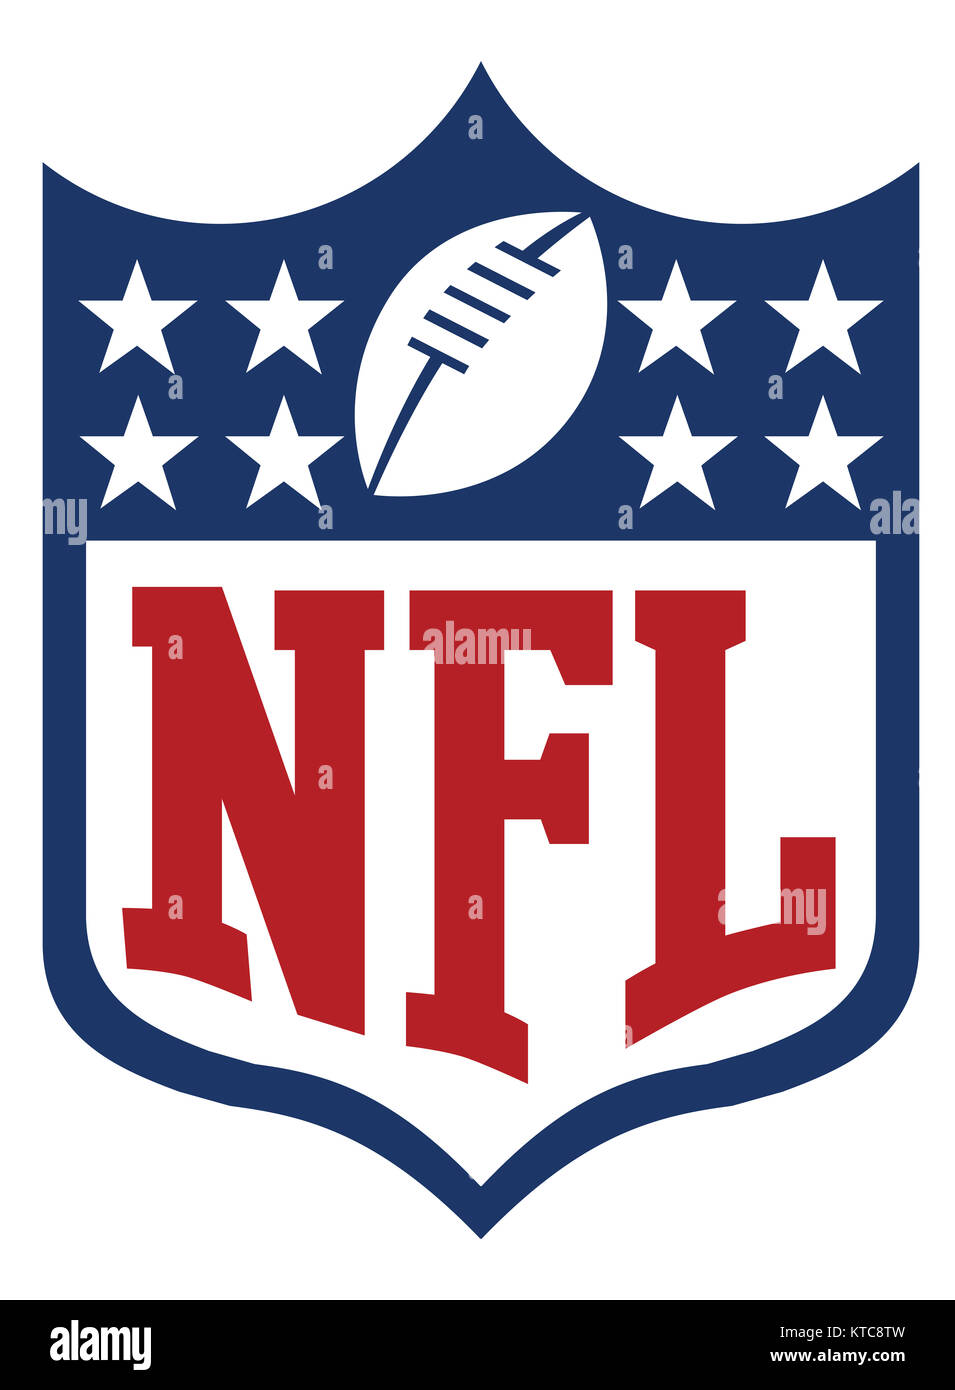 nfl    National Football Conference - Stock Image